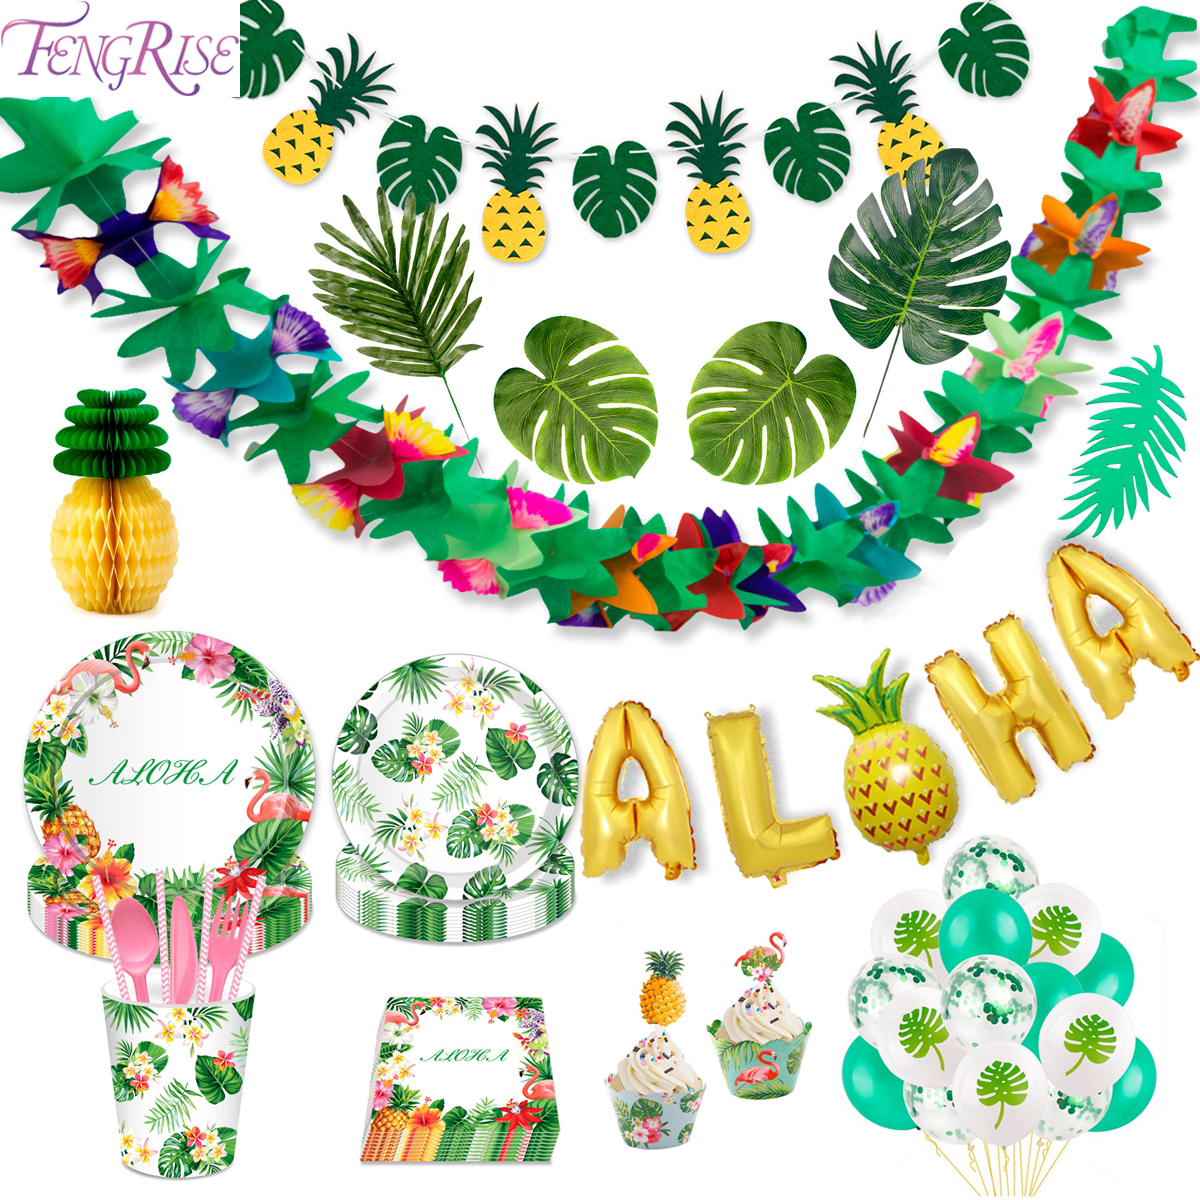 FENGRISE Palm Leaf Hawaiian Party Decorations Hawaii Tropical Party Summer Flamingo Party Luau Wedding Decor Aloha Pineapple